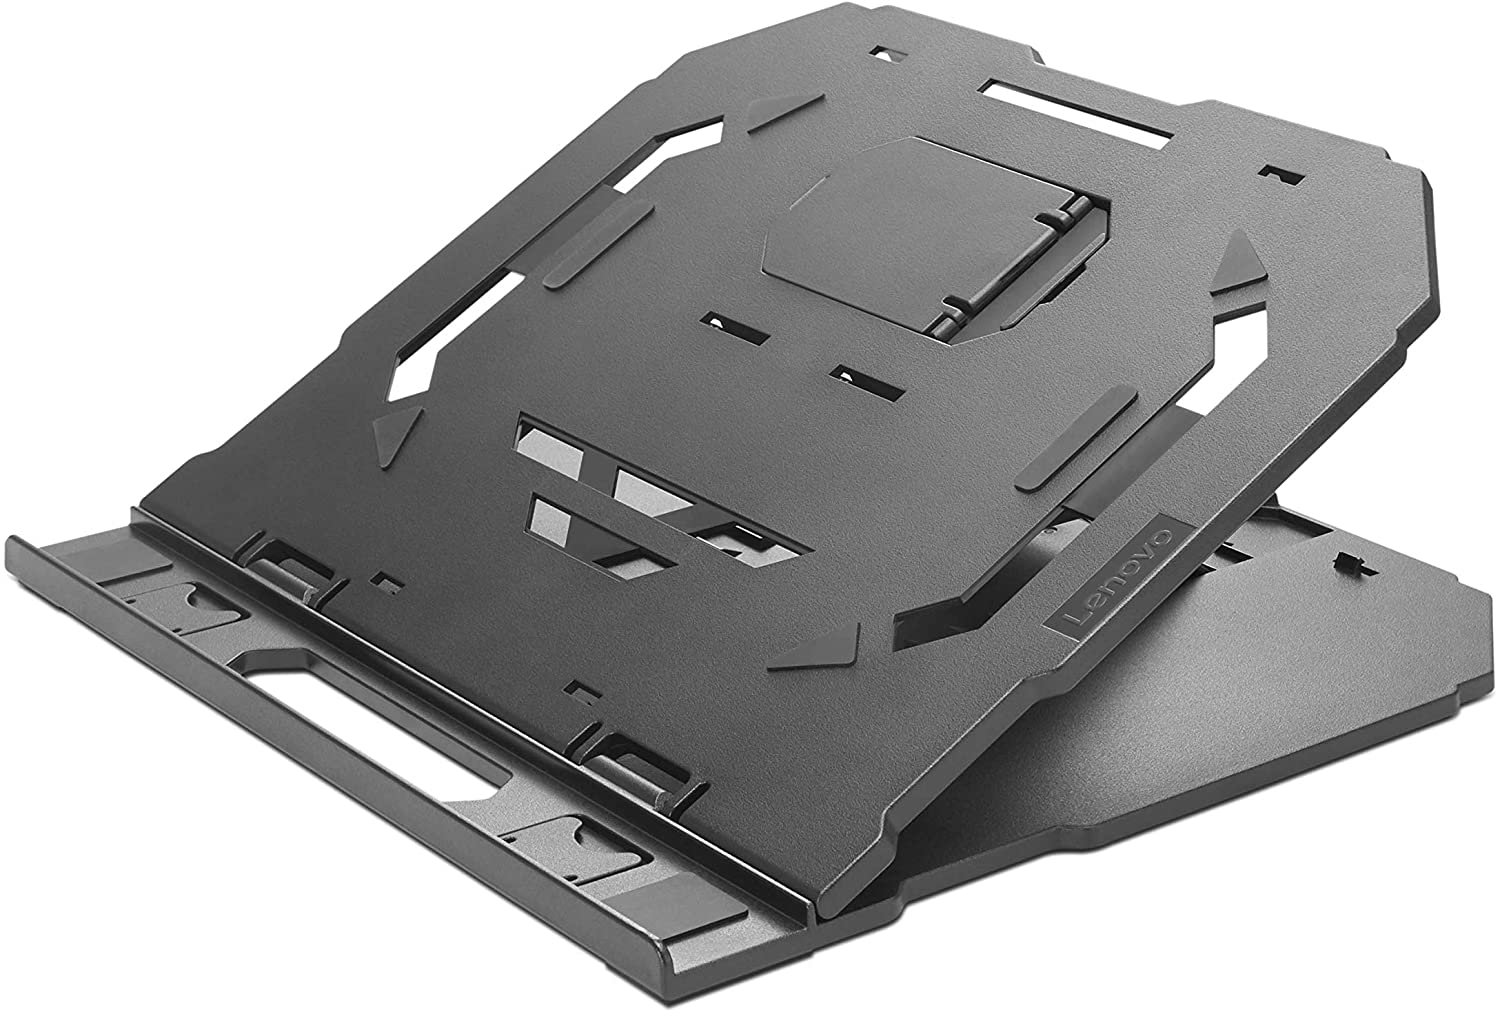 GXF0X02619 Lenovo 2-in1 Laptop Stand